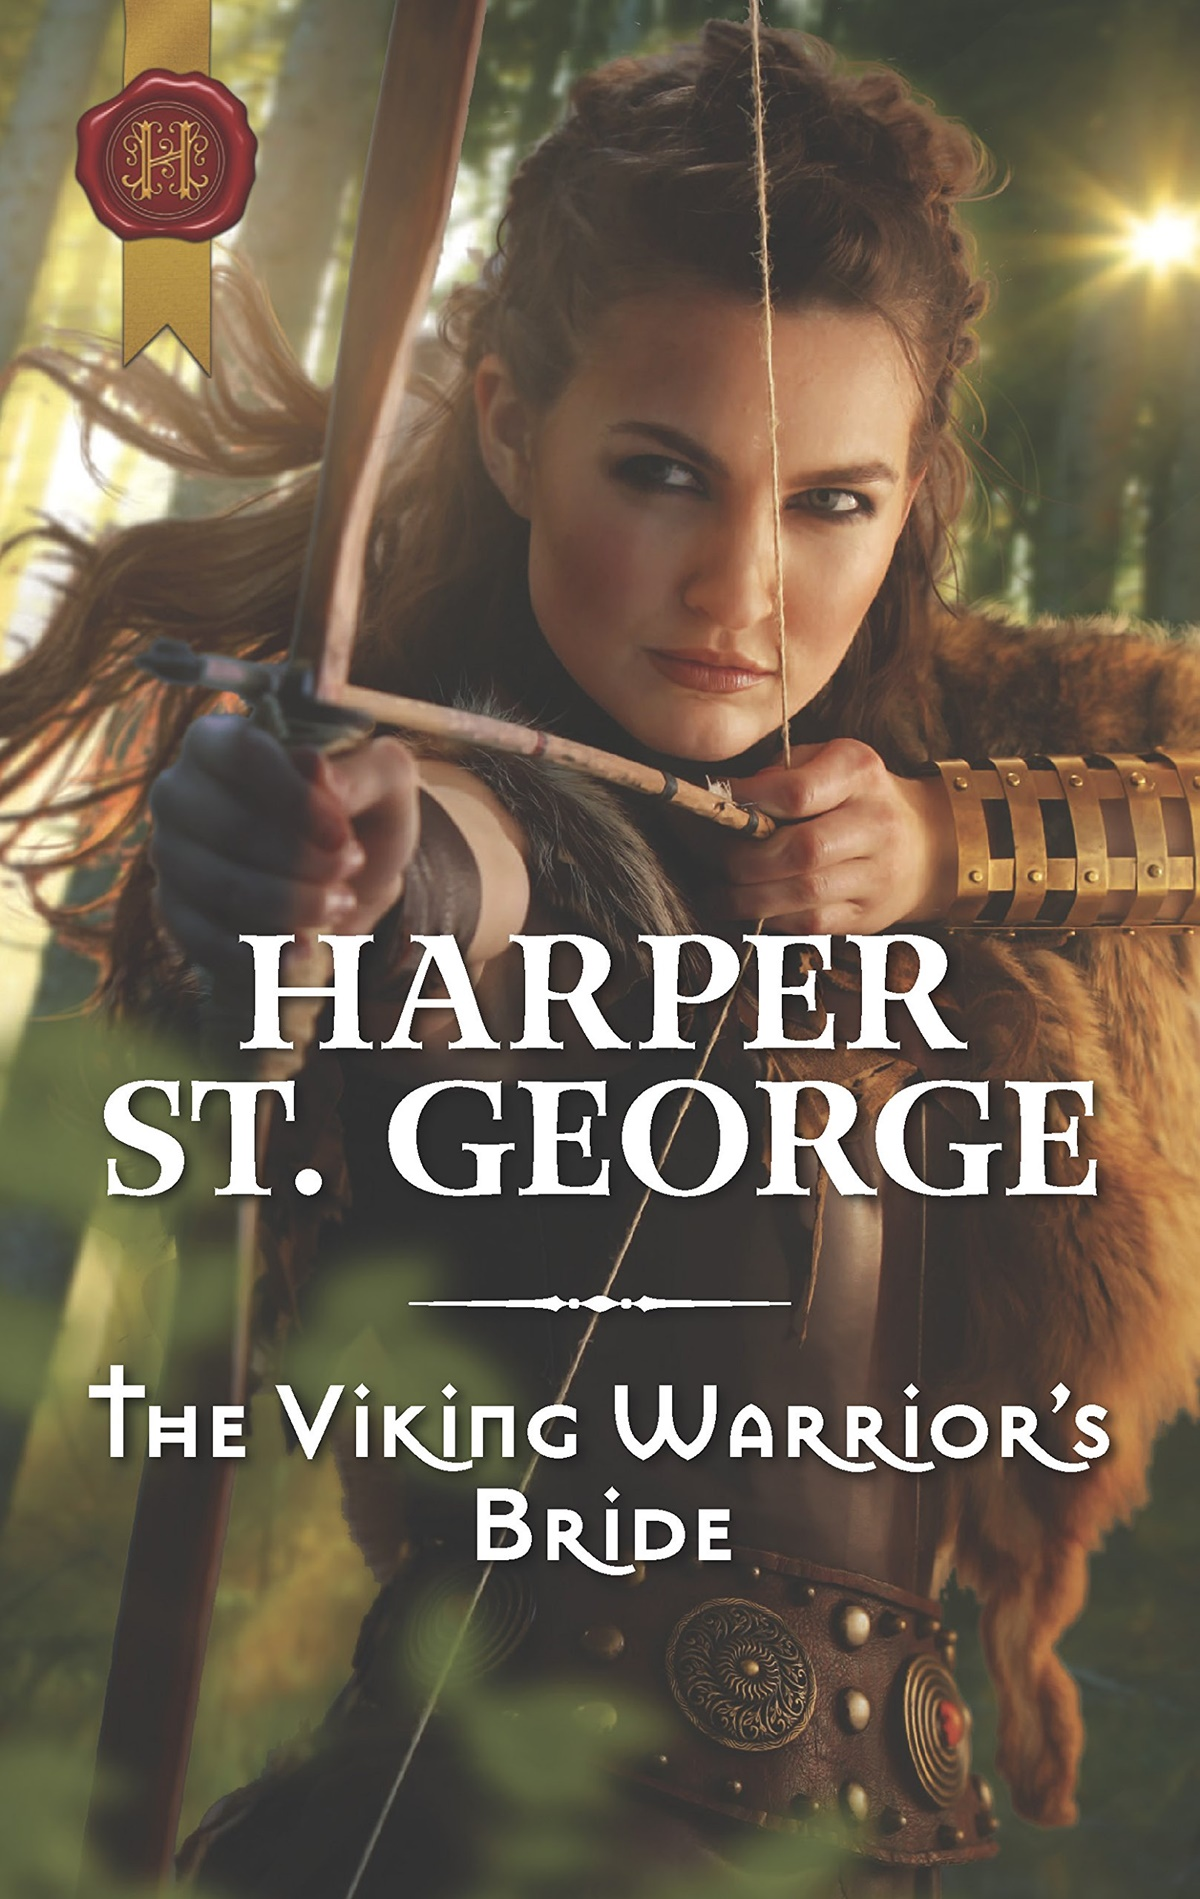 Viking Romance Novels, cover of The Viking Warrior's Bride by Harper St. George, books